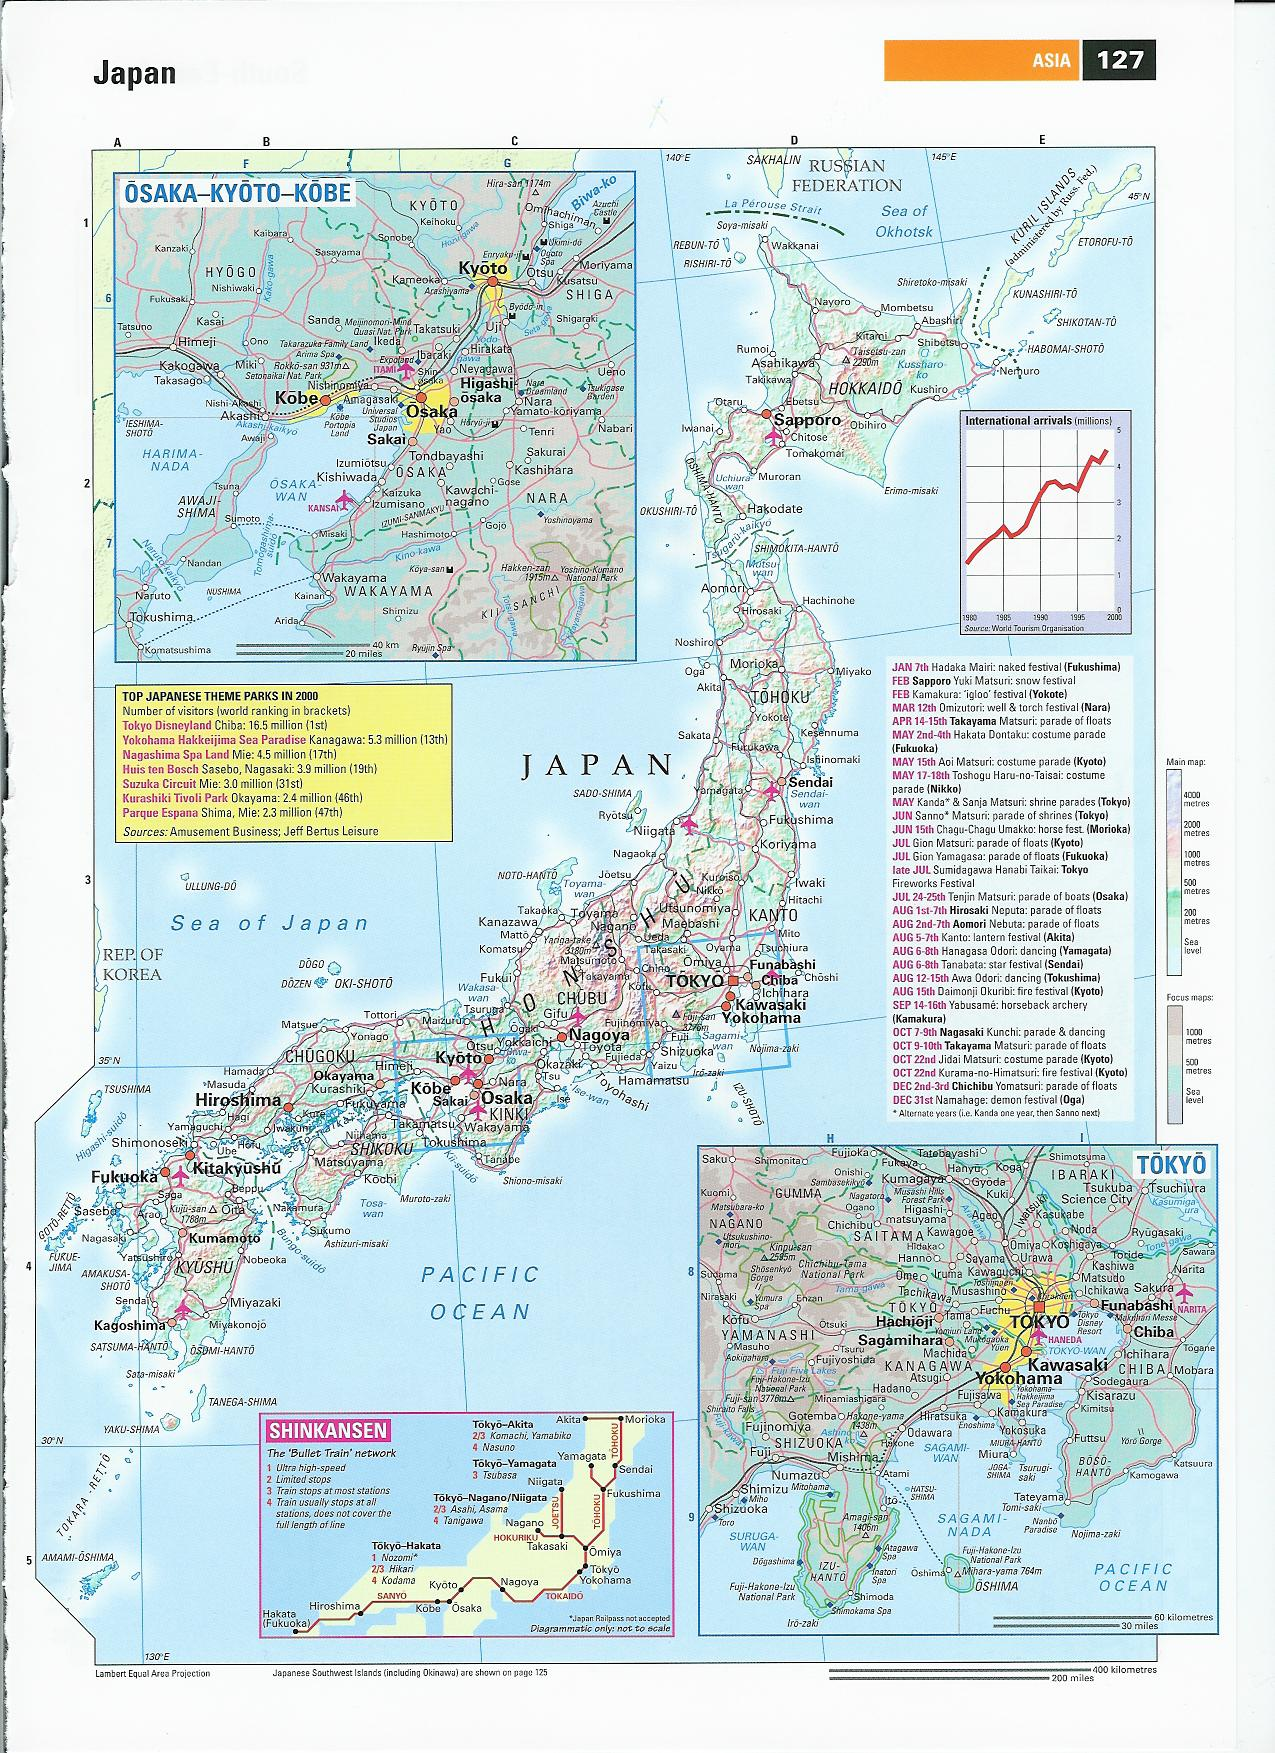 Japan Tourist Map Japan mappery – Japan Tourist Map